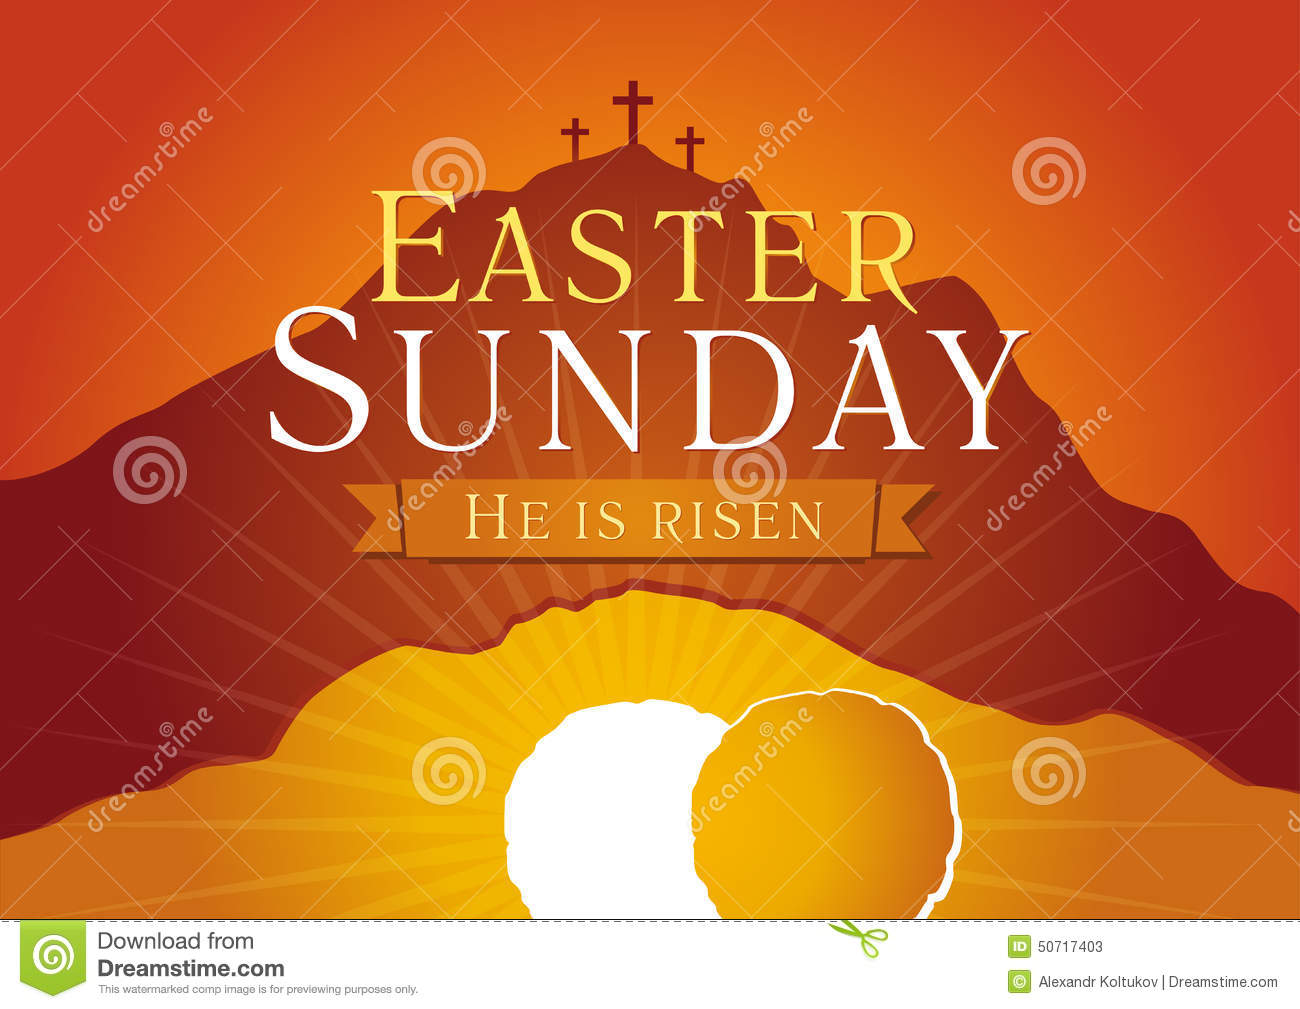 Easter Sunday, He is risen.